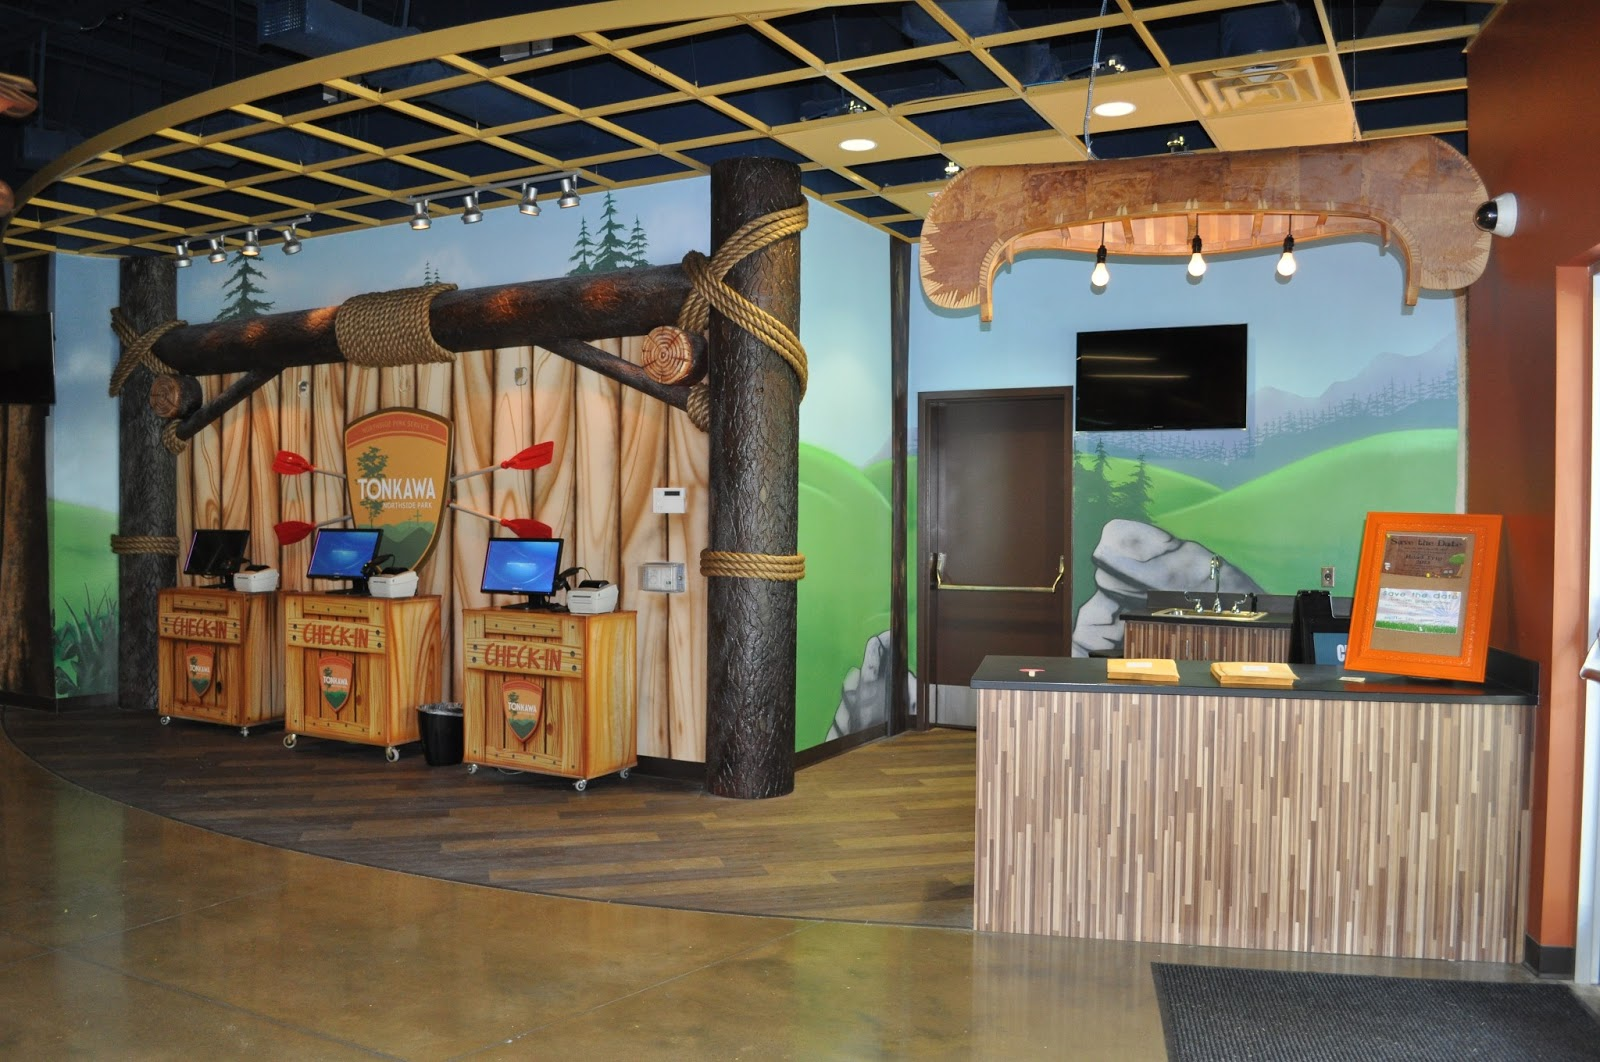 Kids ministry design indoor playground worlds of wow blog for Indoor playground design ideas